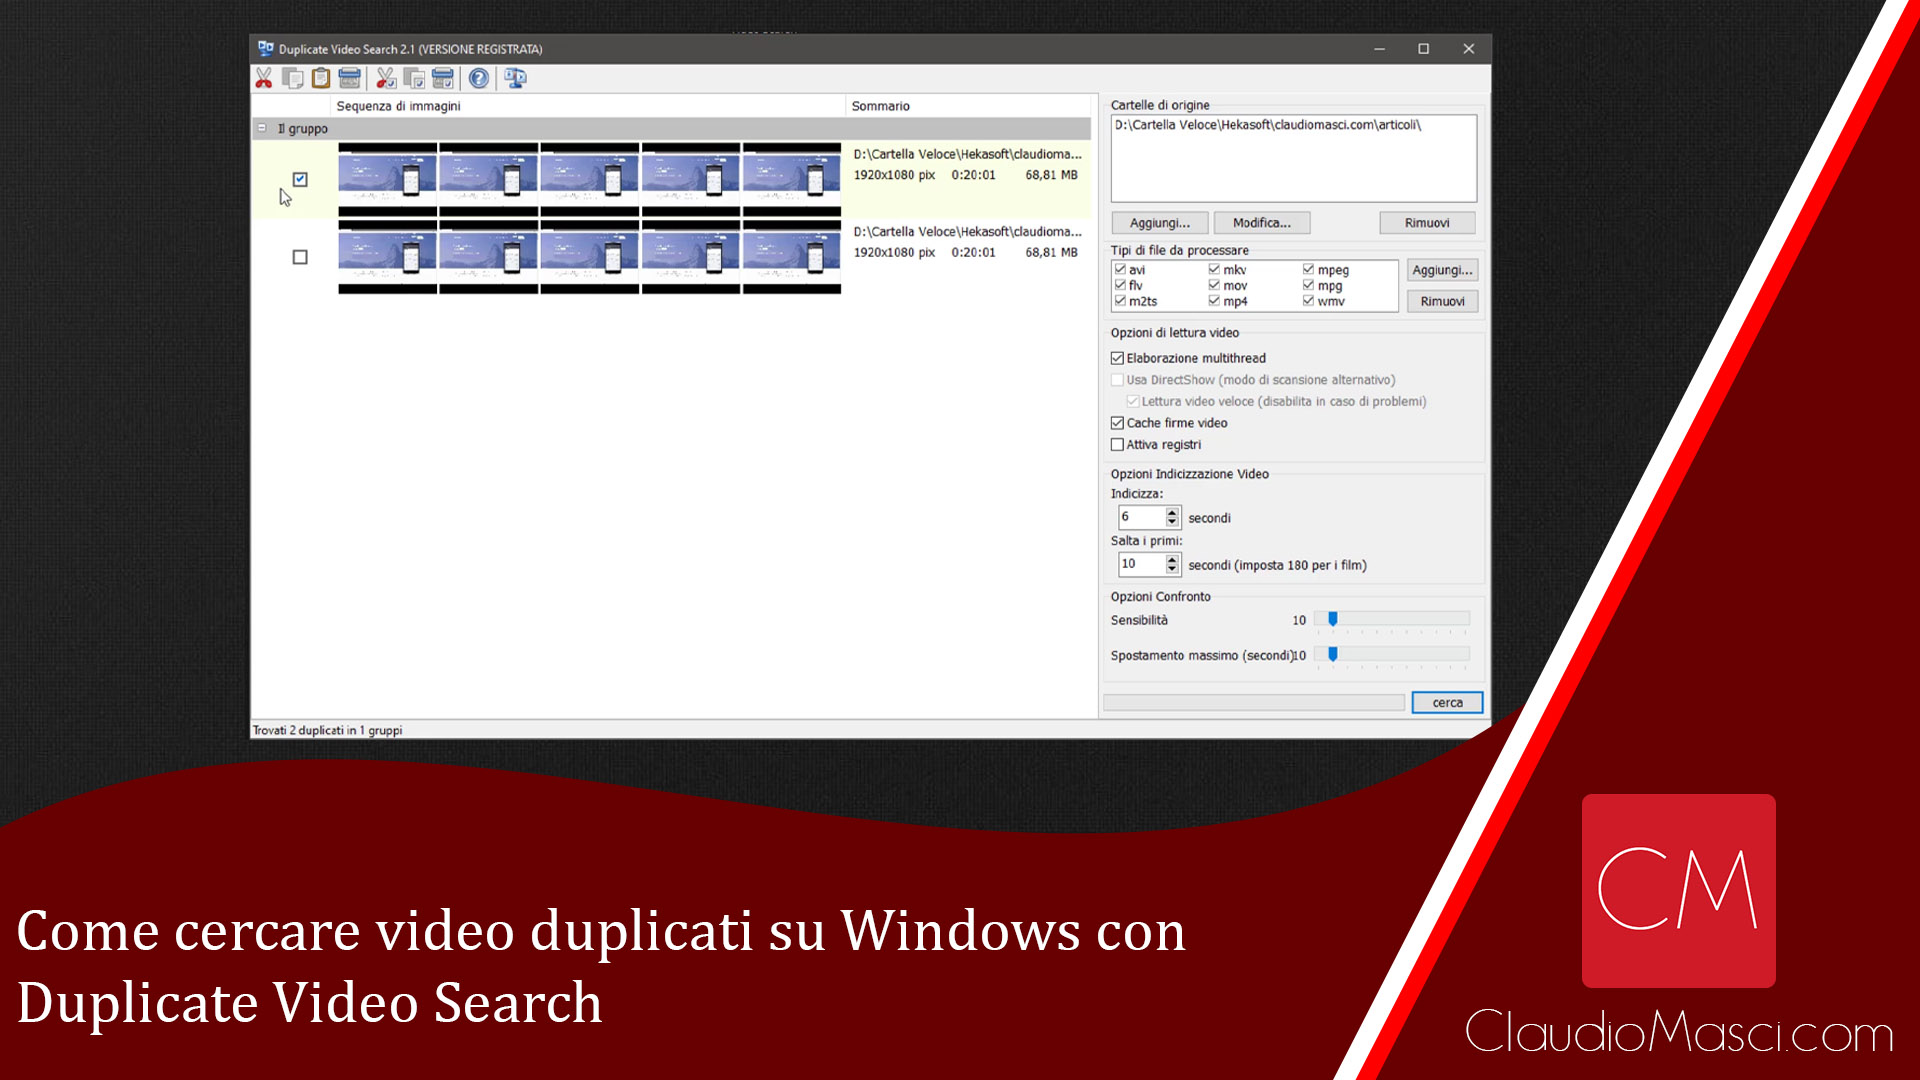 Come cercare video duplicati su Windows con Duplicate Video Search